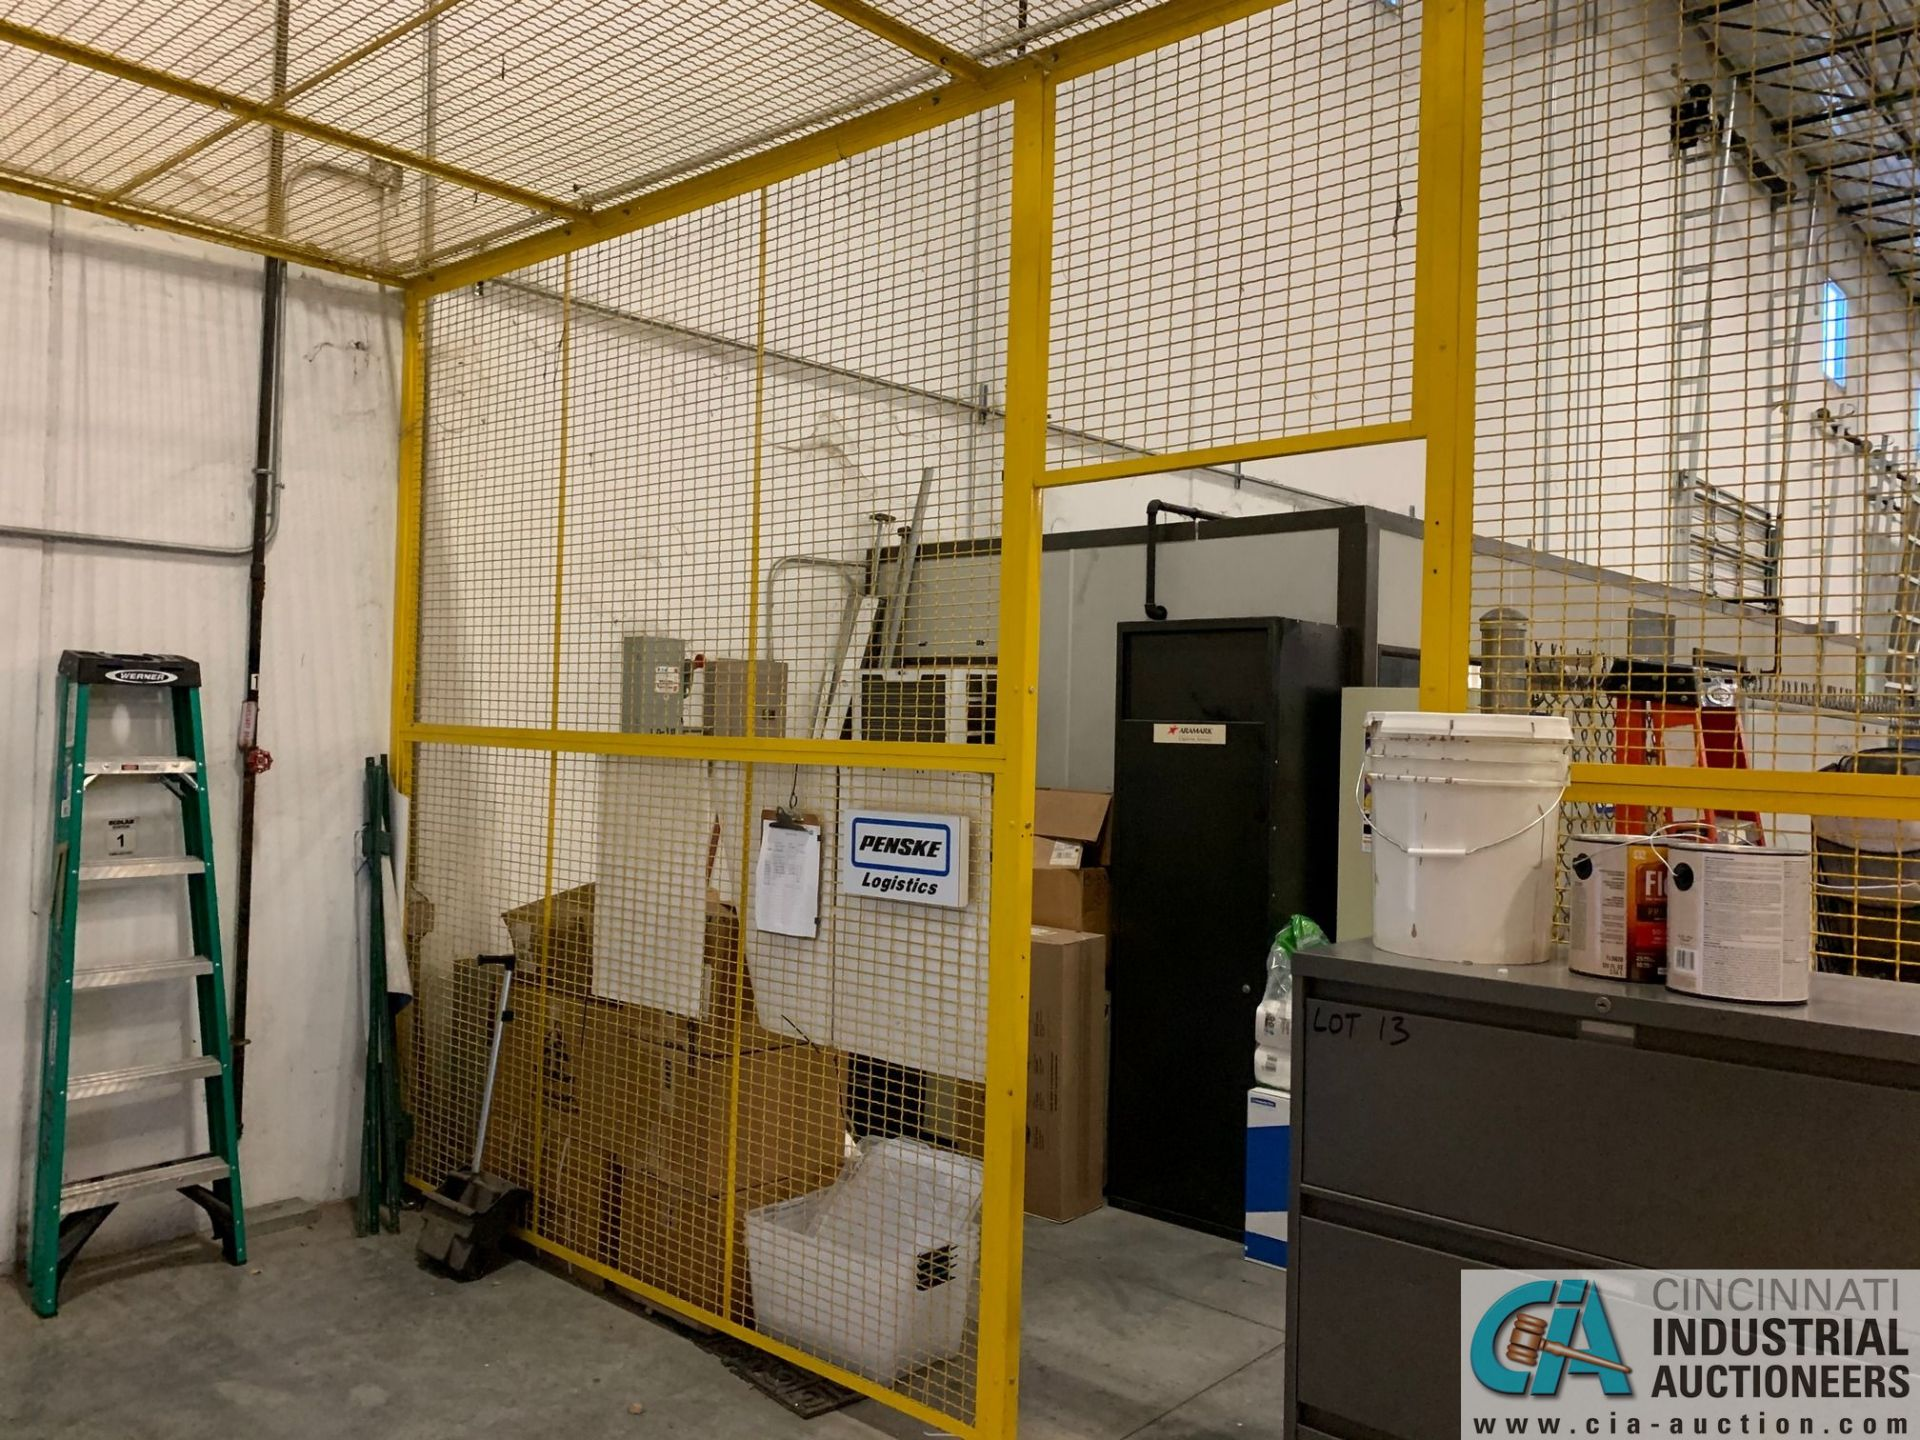 SAFETY CAGE - FRONT DRIVERS (5400 OAKLEY INDUSTRIAL BLVD., FAIRBURN, GA 30213) - Image 5 of 6